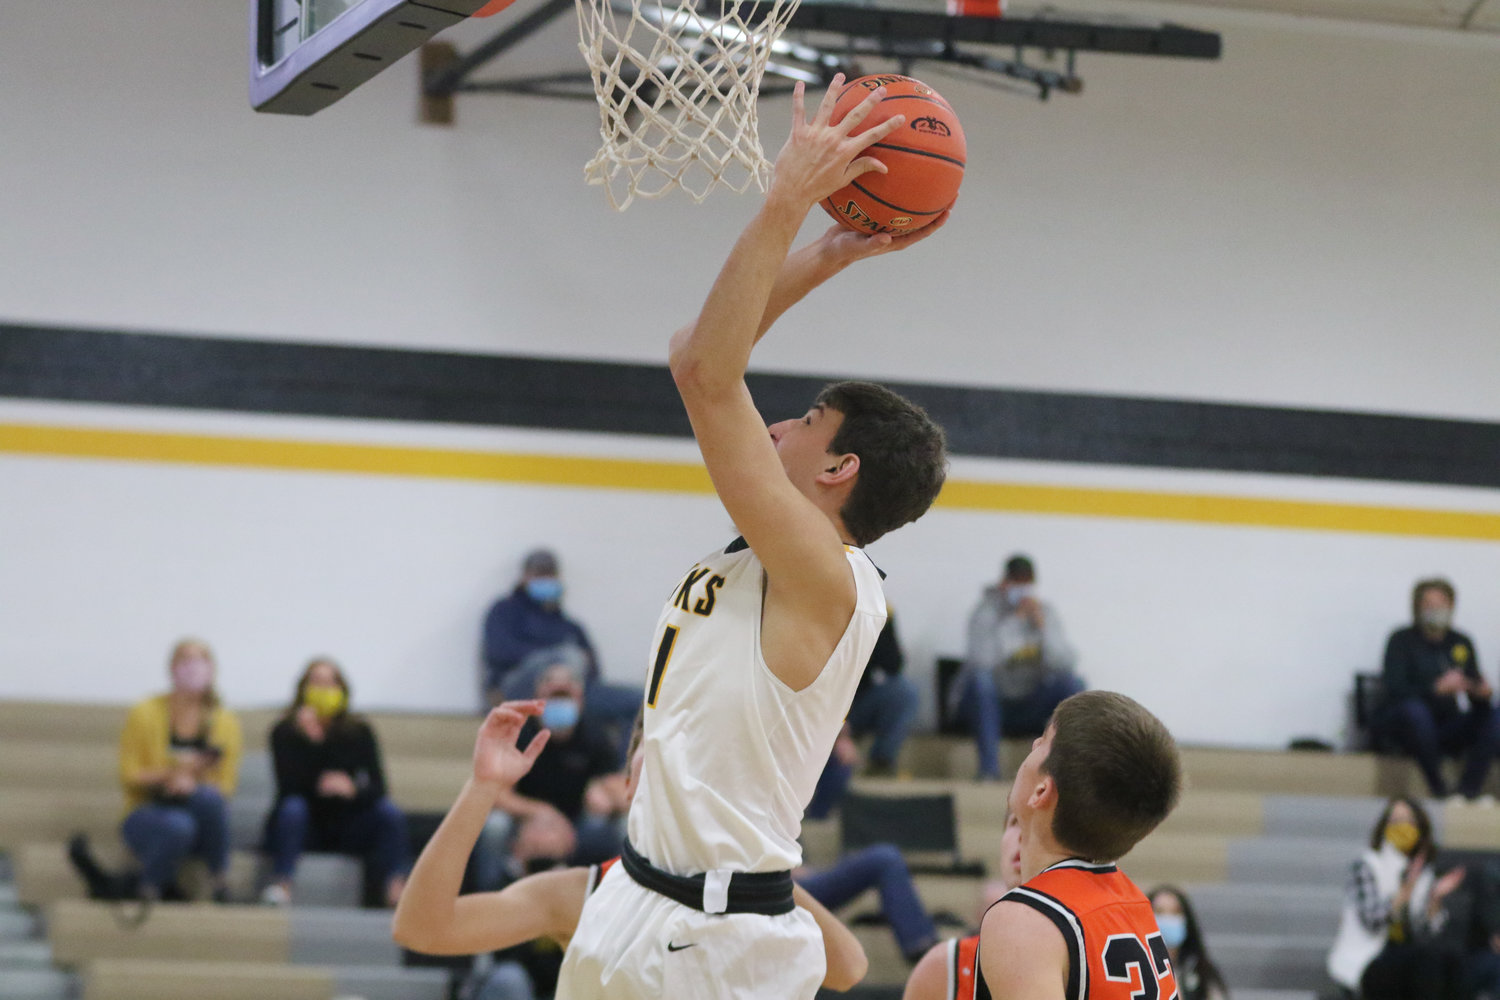 Ethan Kos puts up a shot in the paint during the first quarter of a scrimmage with Mediapolis in Wellman on Saturday, November 21.